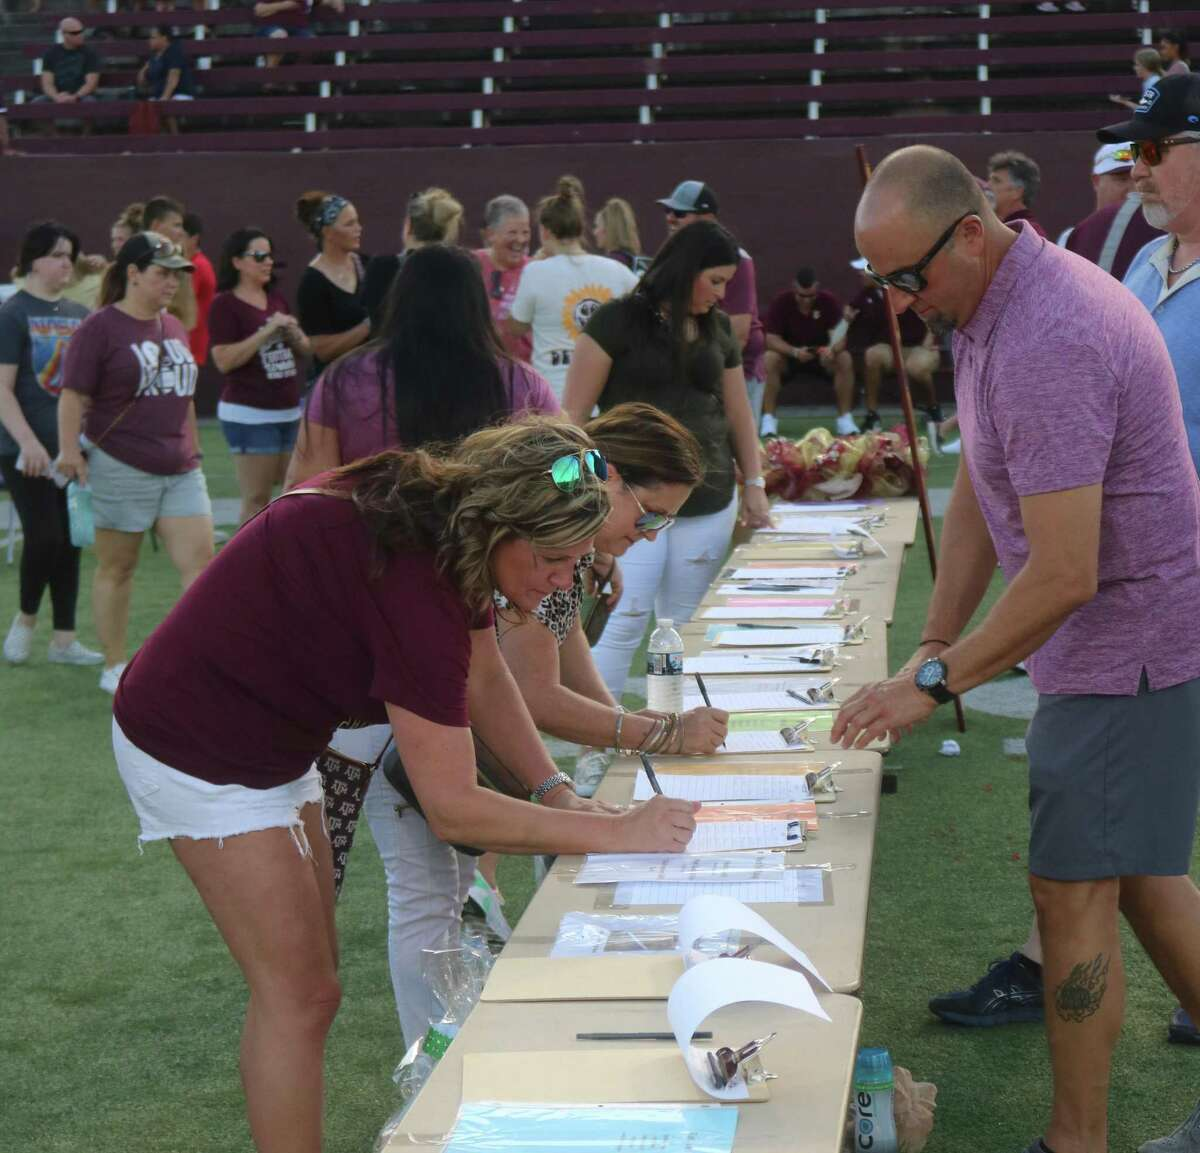 People gladly participated in the silent auction Saturday night, hoping to outbid others for gift baskets.